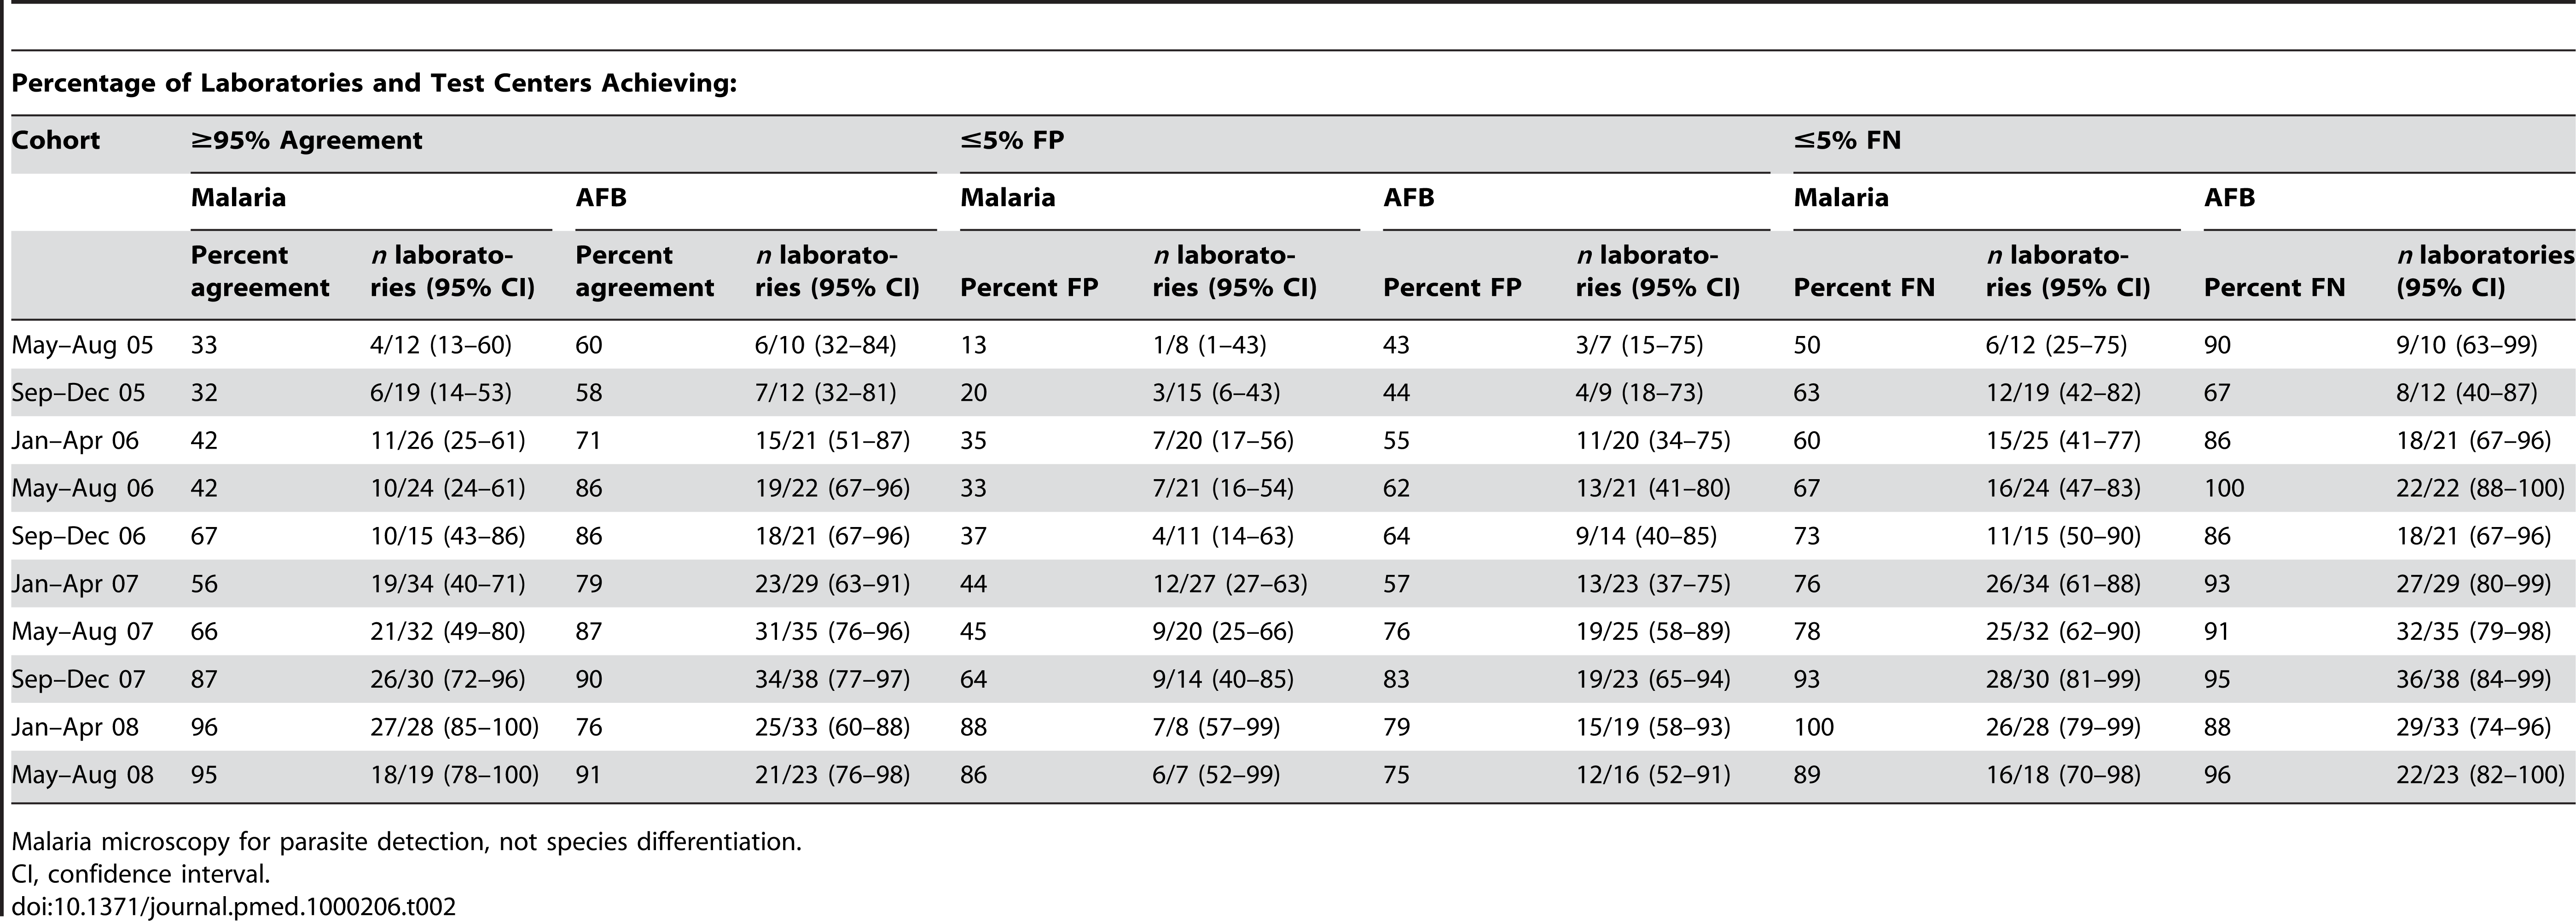 Performance of malaria and AFB microscopy.